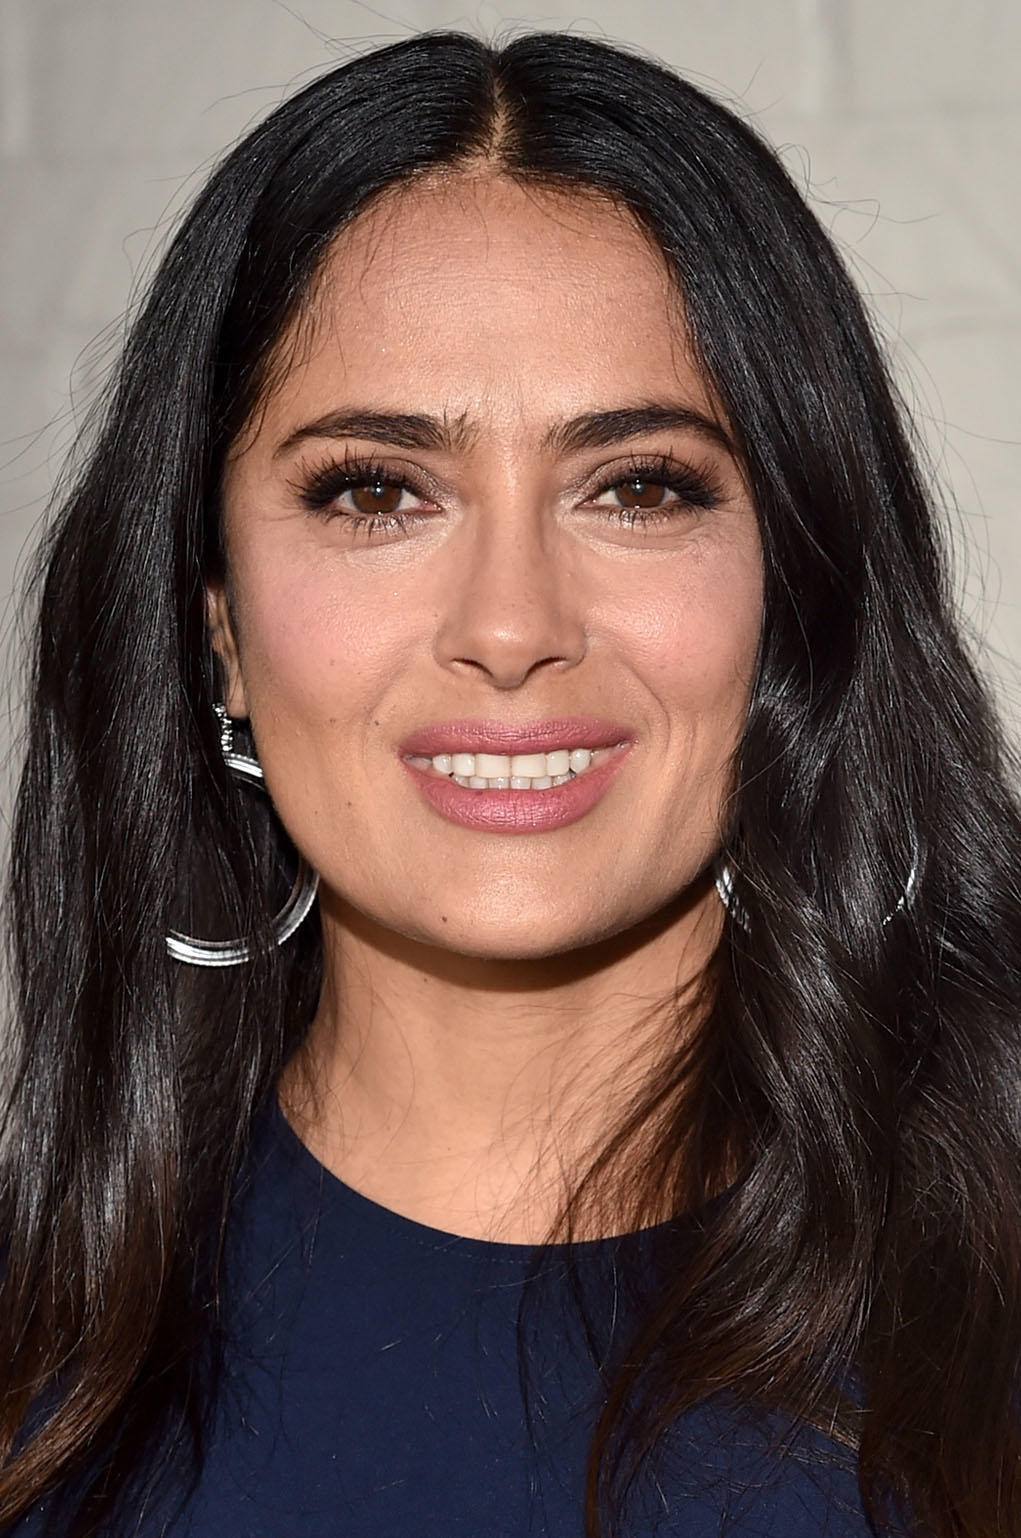 Salma Hayek at the Indie Contenders Roundtable during AFI FEST 2017 in Hollywood.